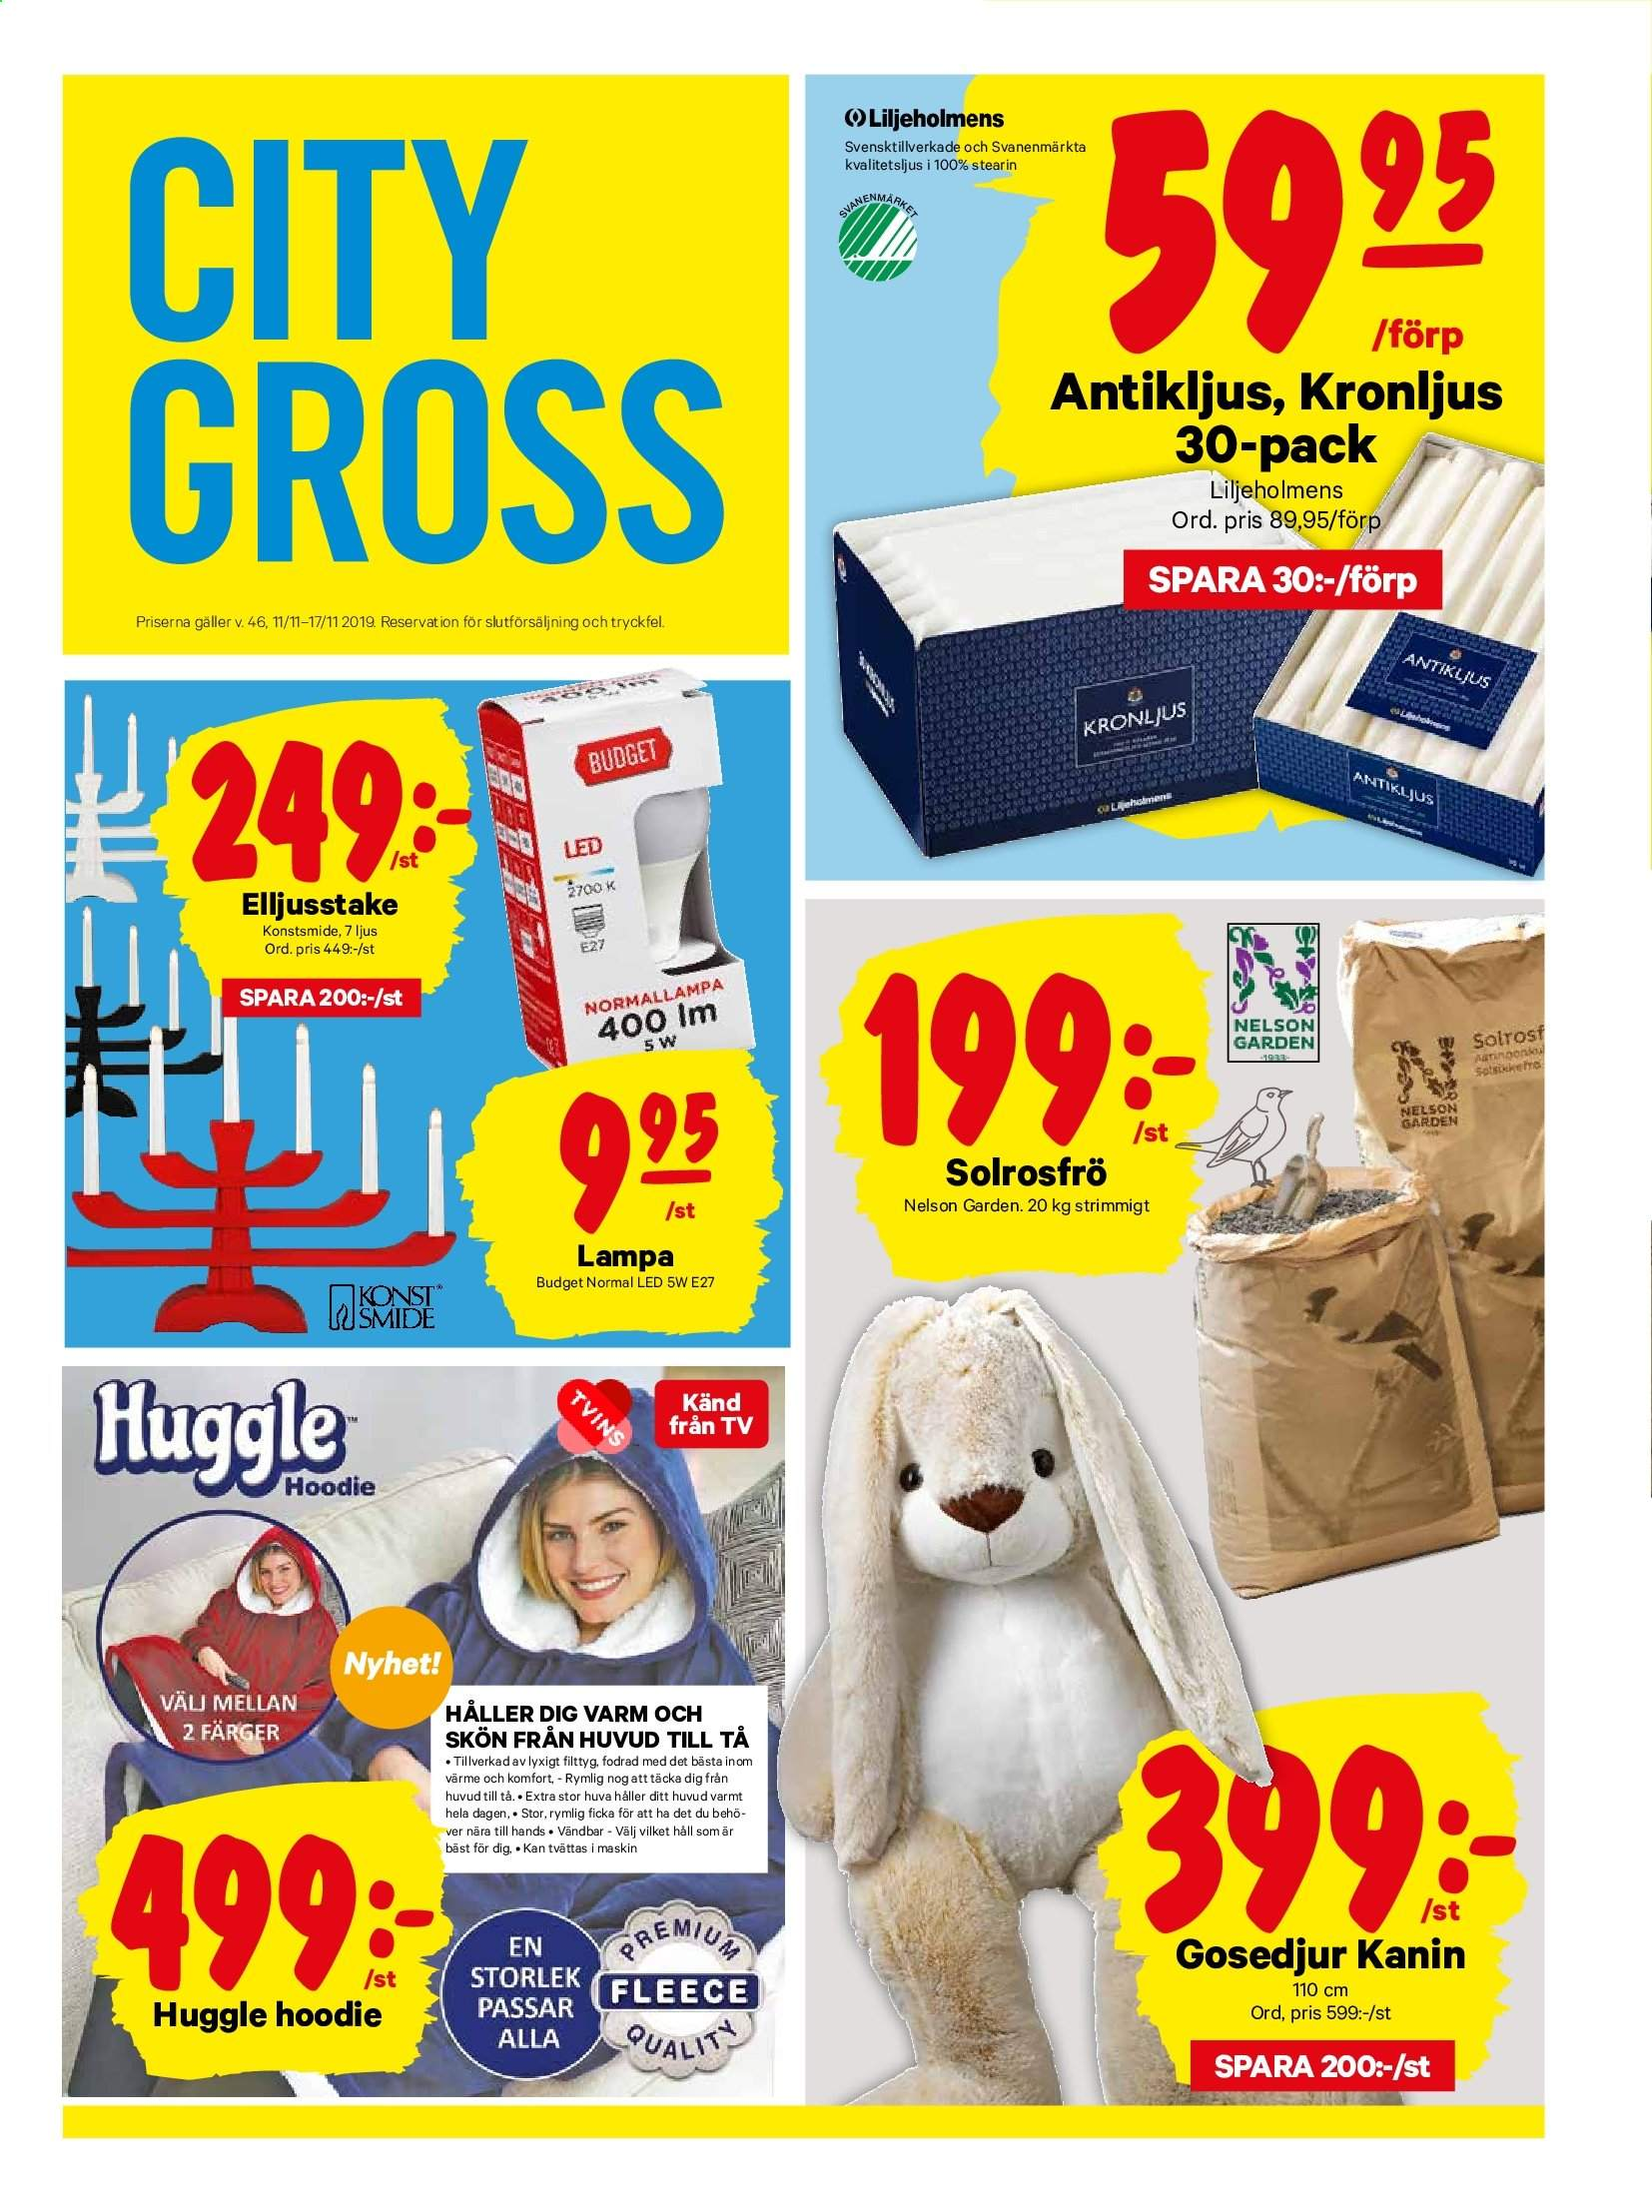 City Gross reklamblad - 11/11 2019 - 17/11 2019. Sida 14.